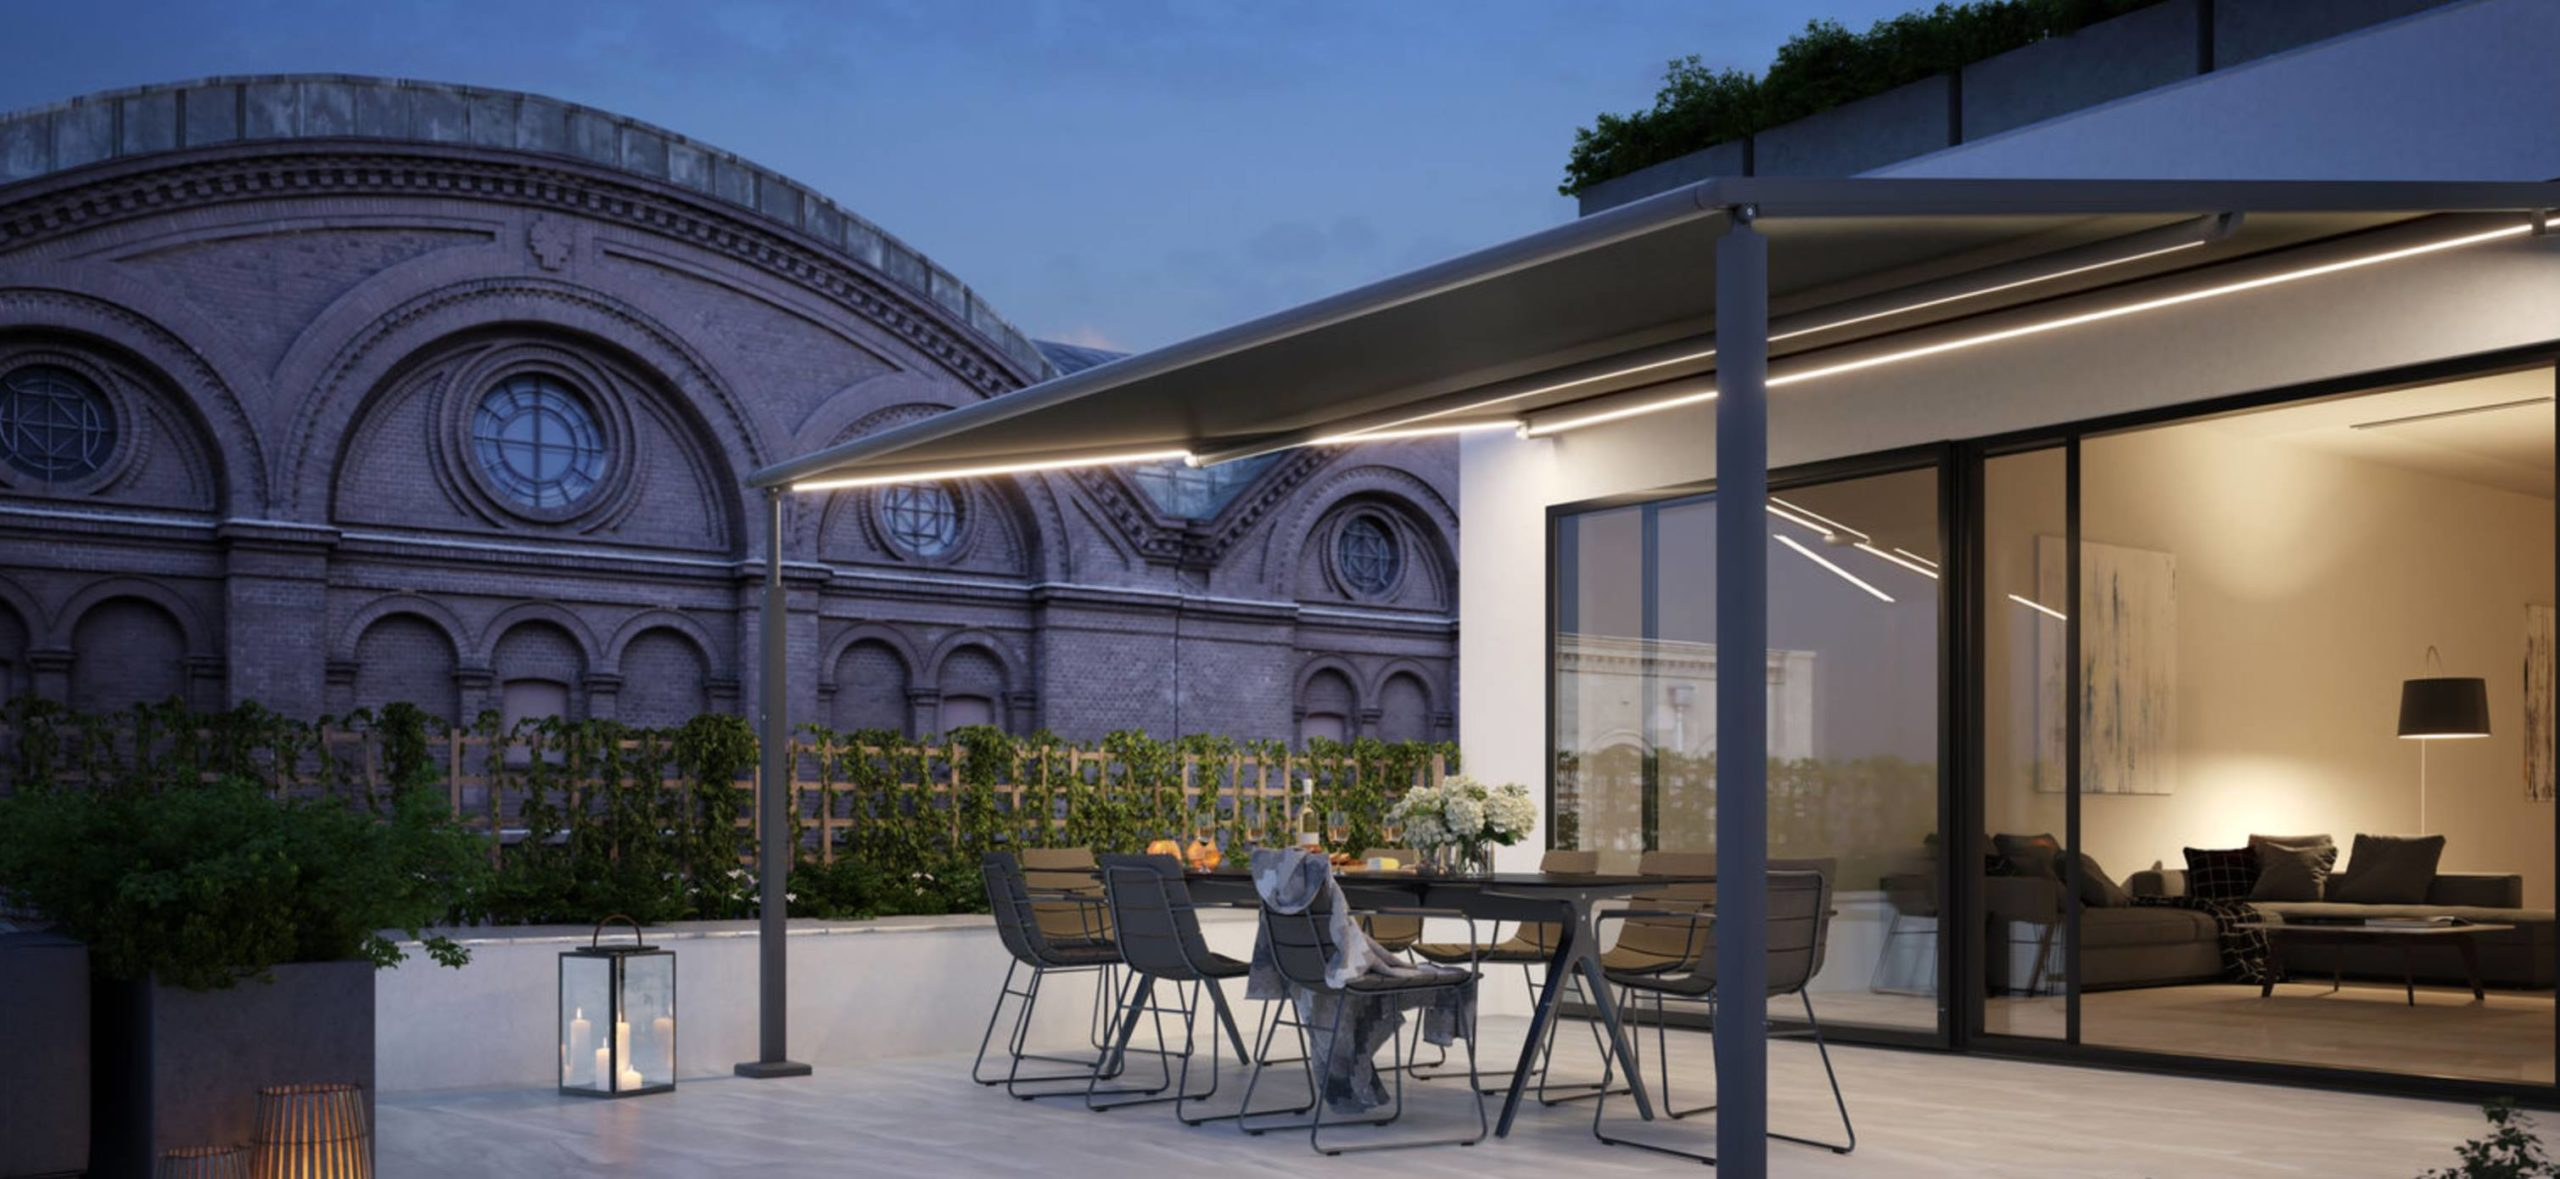 <p>Markilux Awnings Solar Protection Pergola Compact Limited Space Setting</p> <p></p> <p>Pergola Compact suits the smaller hospitality venue with limited space, but looking to extend their dining offering</p>